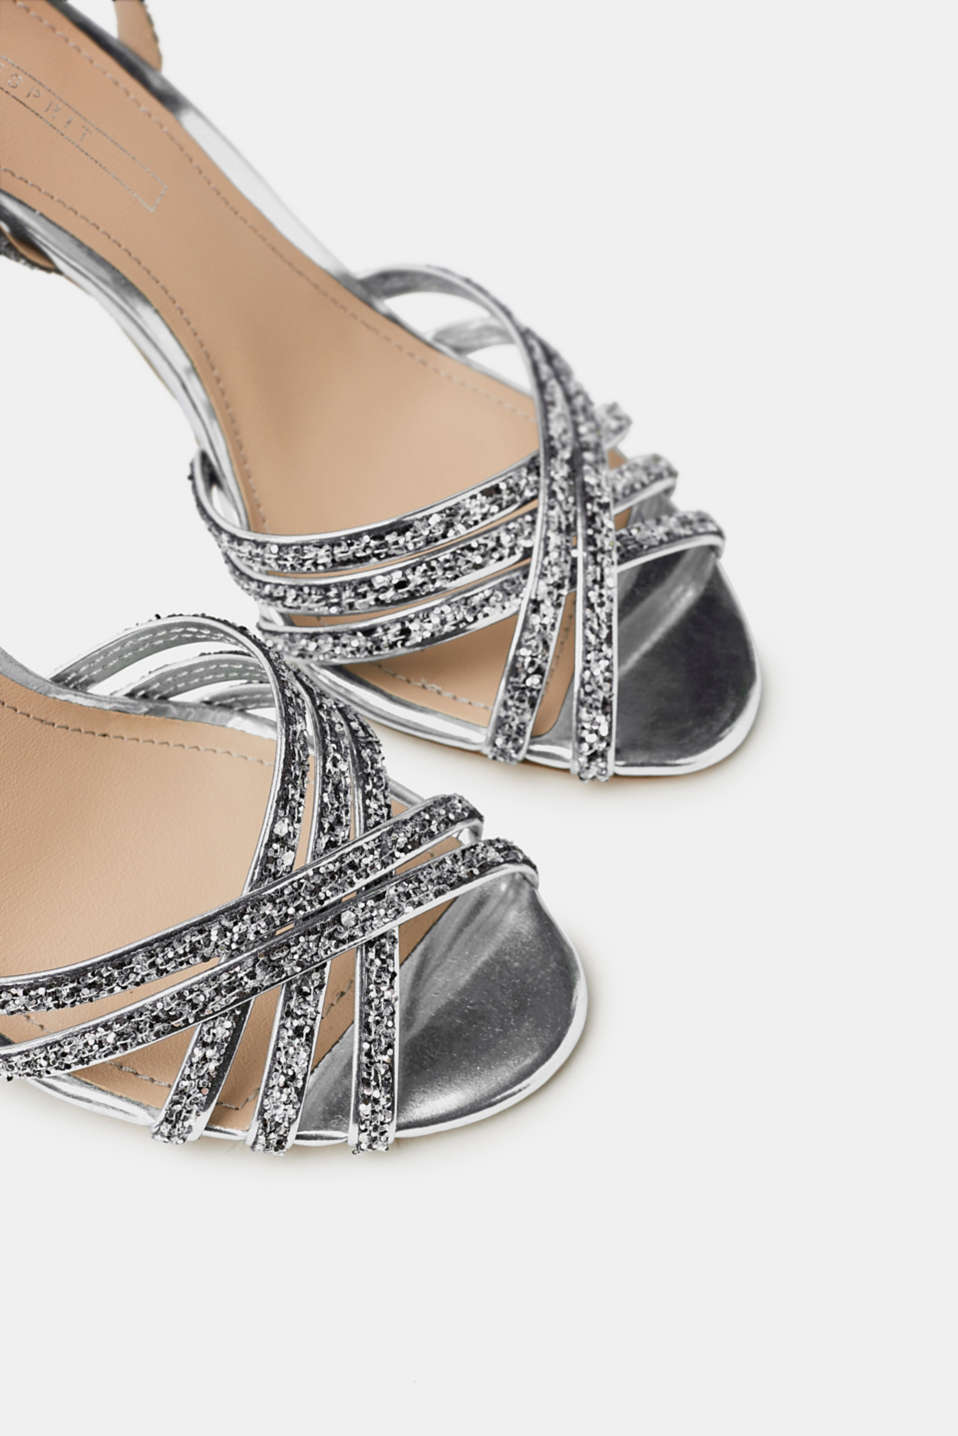 Sandals with sparkling glitter